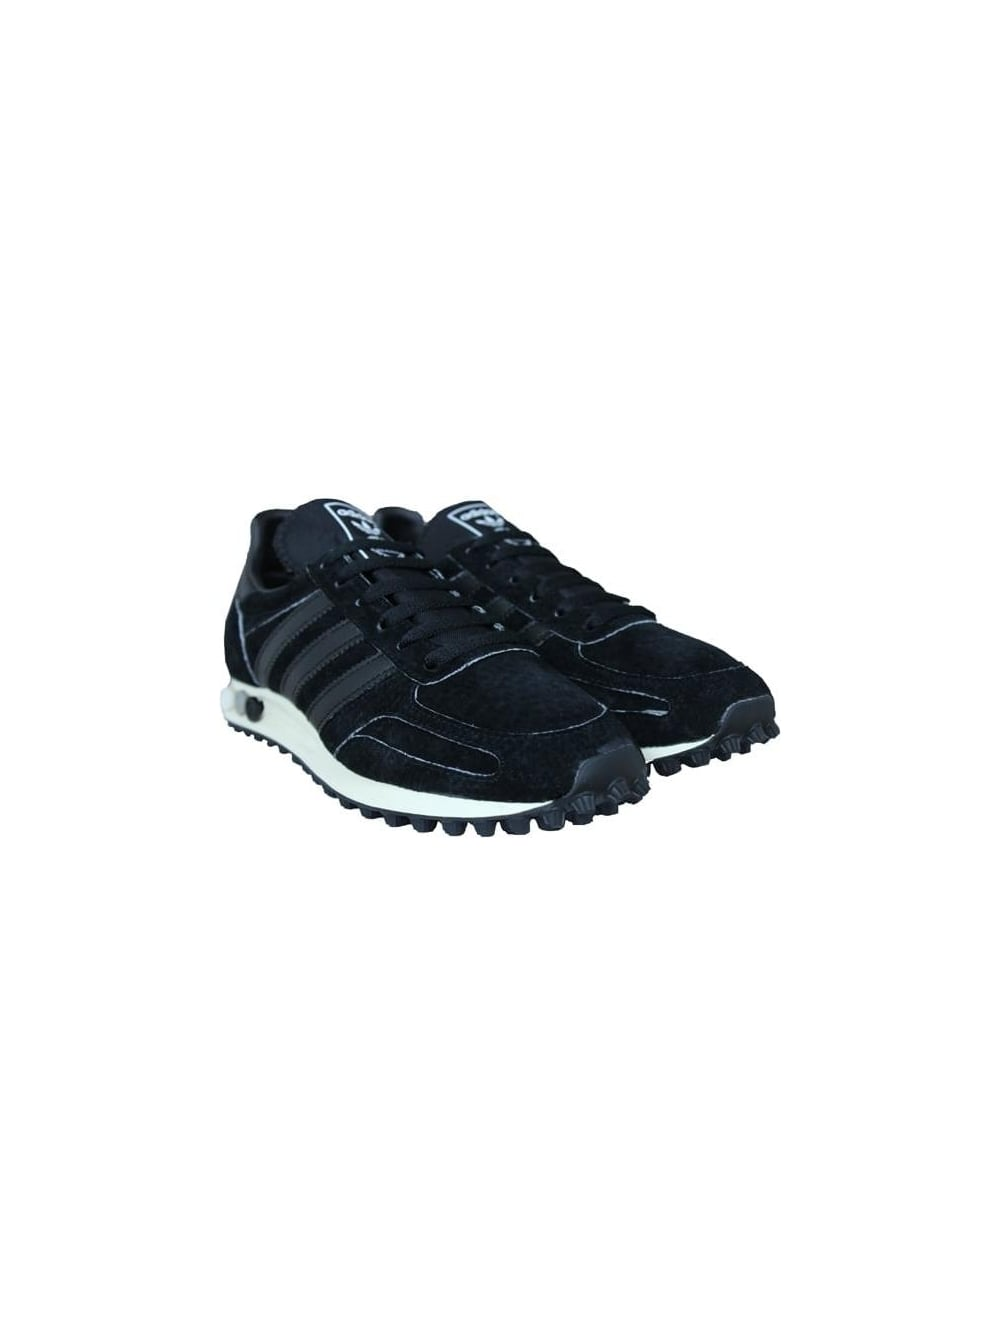 c456f3aa6c090 Adidas LA Trainer OG in Core Black (Pre-Order Due Sept.) - Northern ...